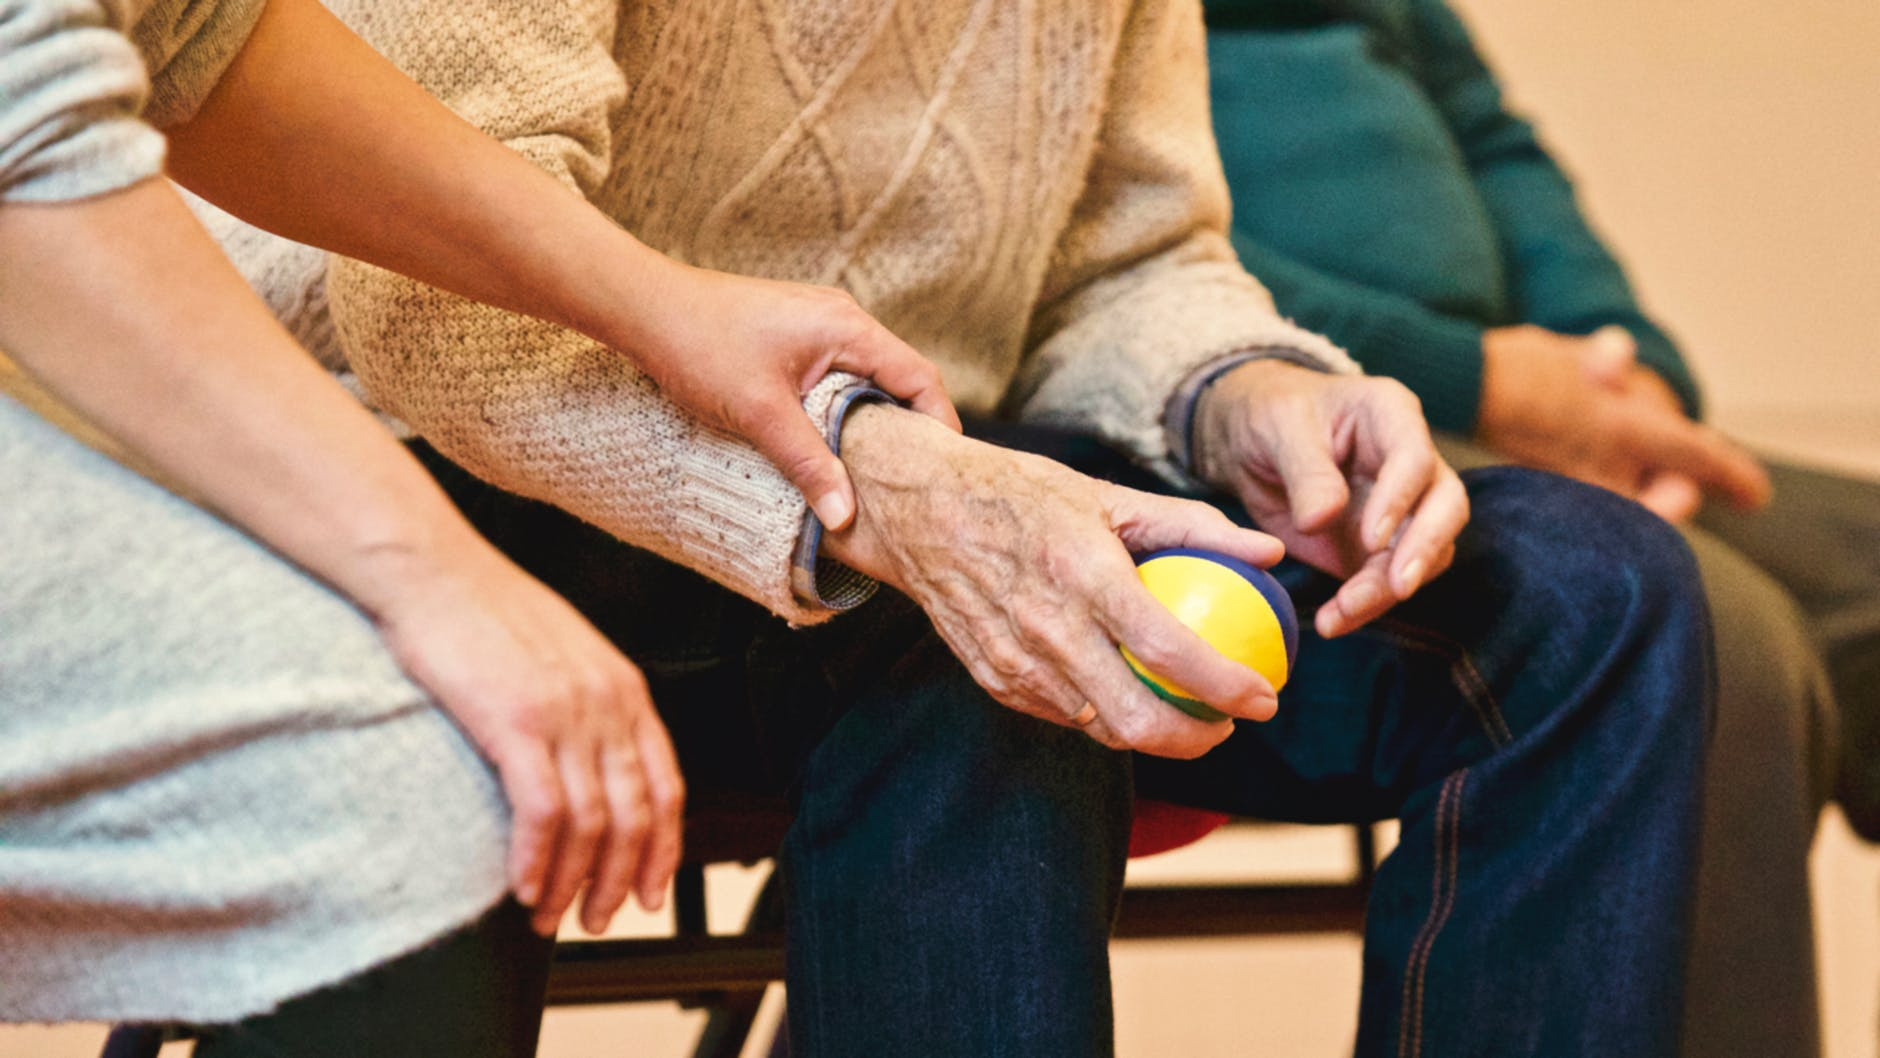 A senior holding a ball in his hand. Practicing certain activities can help with maintaining memory care.